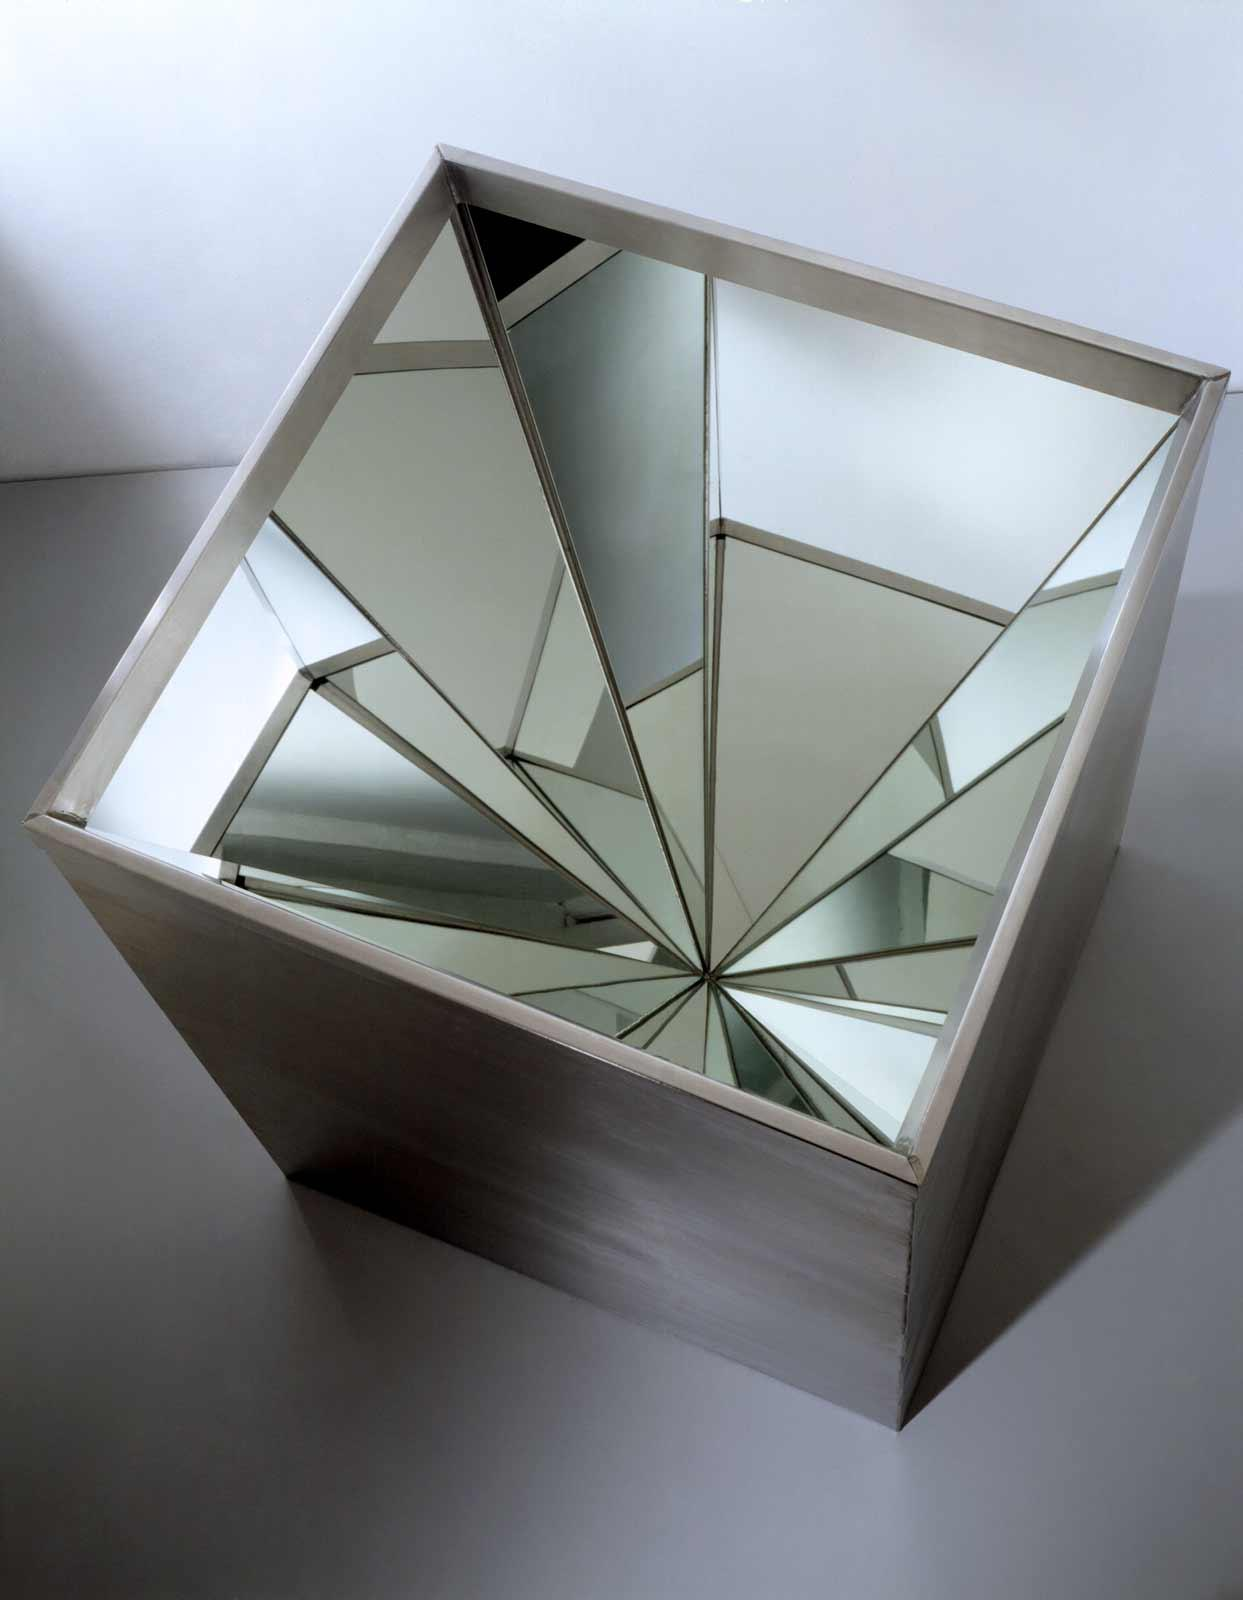 A 28 x 28 inch metal box that is open on the top and lined with four triangular mirrors at meet at their apex.